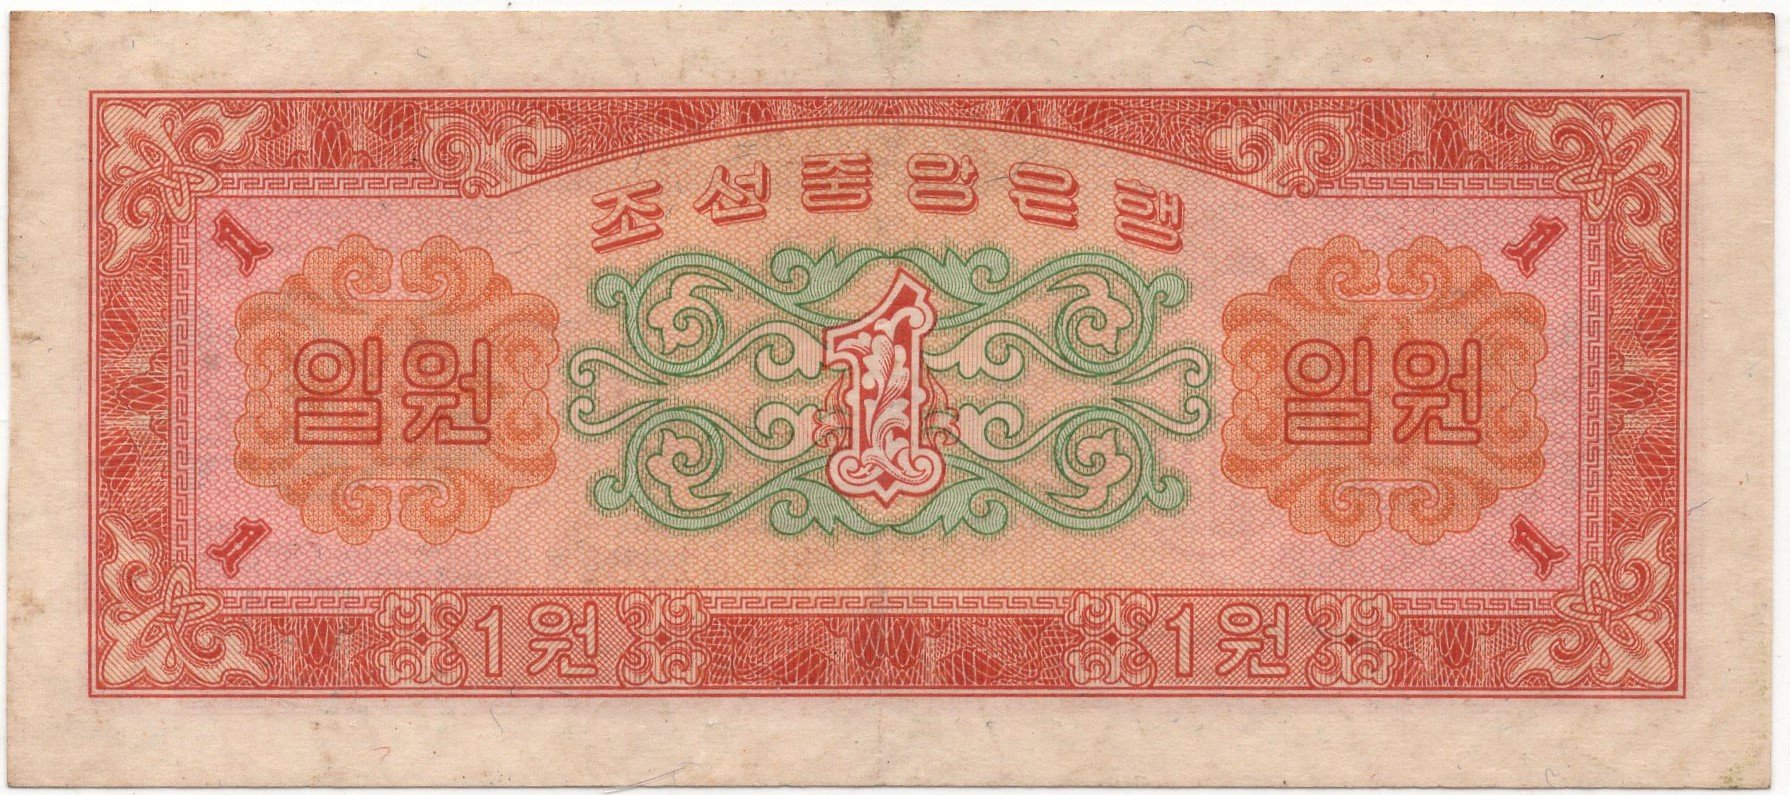 Noth korea 1 won 1959 banknote for sale